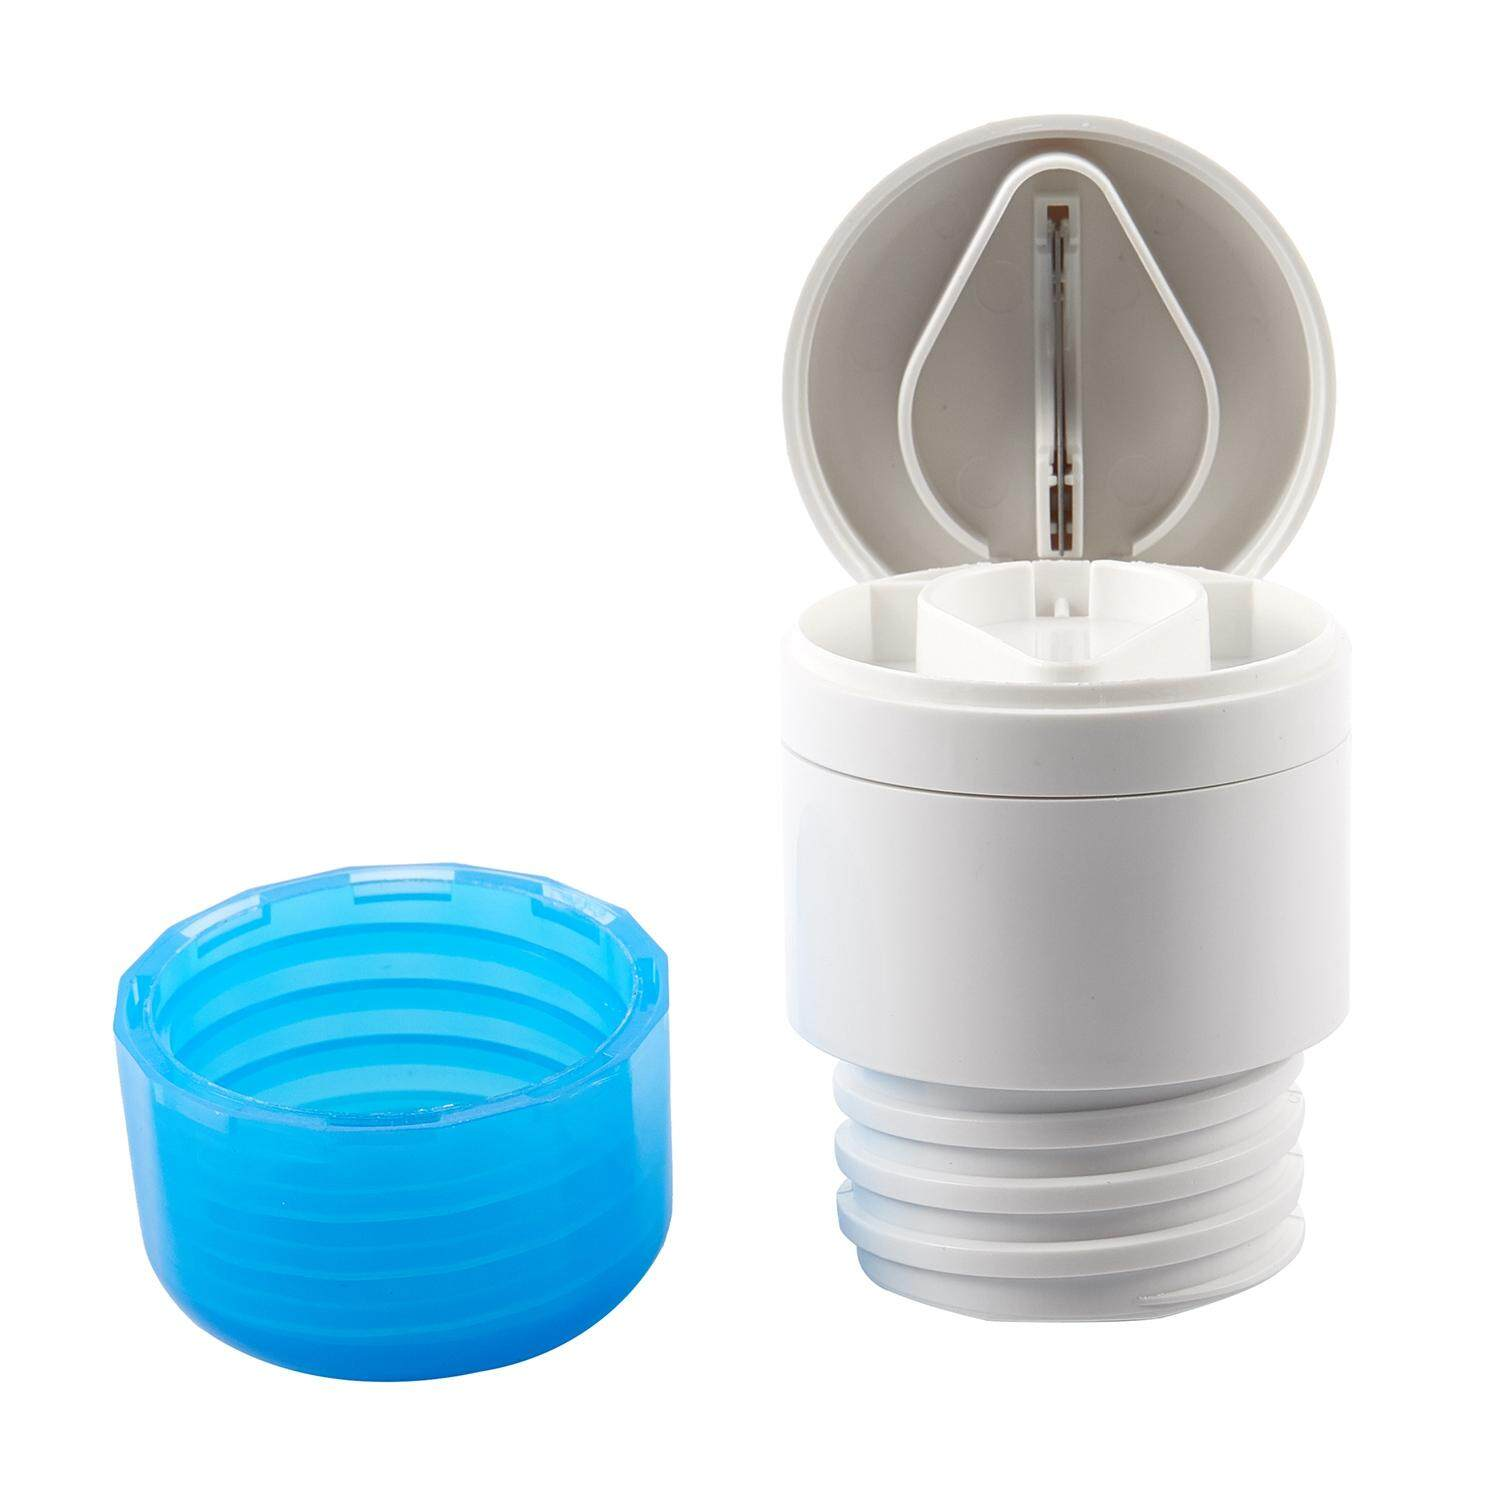 2-In-1 Function Round Pill Cutter Crusher Powder Tablet Medicine Tablets Cut Splitter Grinder Divider Blue & White By Sunnny2015.